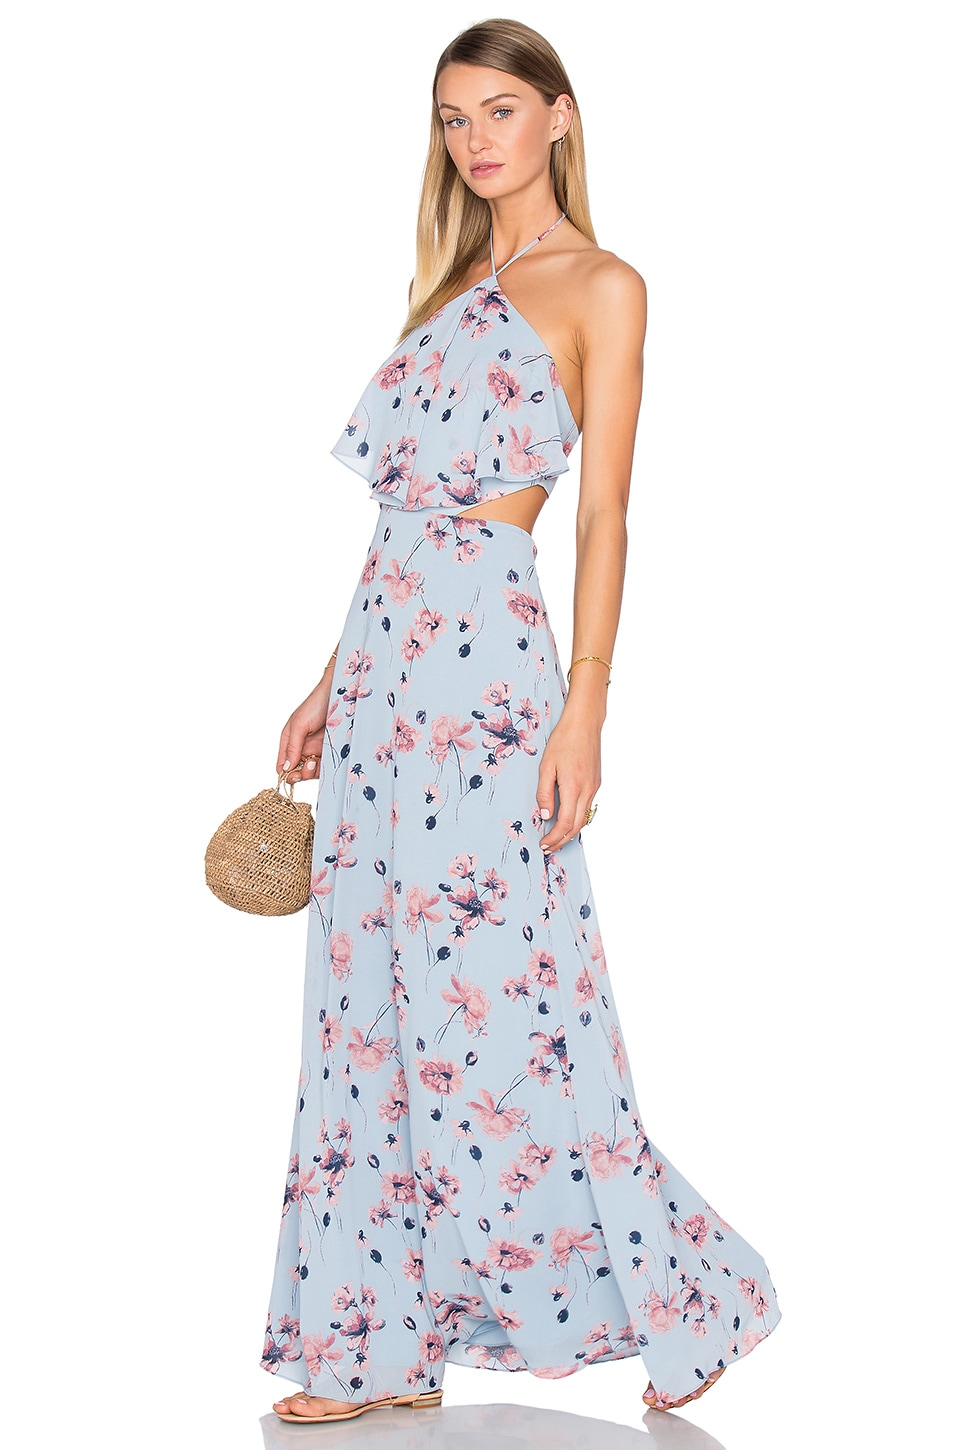 House of Harlow 1960 x REVOLVE Zoe Halter Maxi in Blue Floral